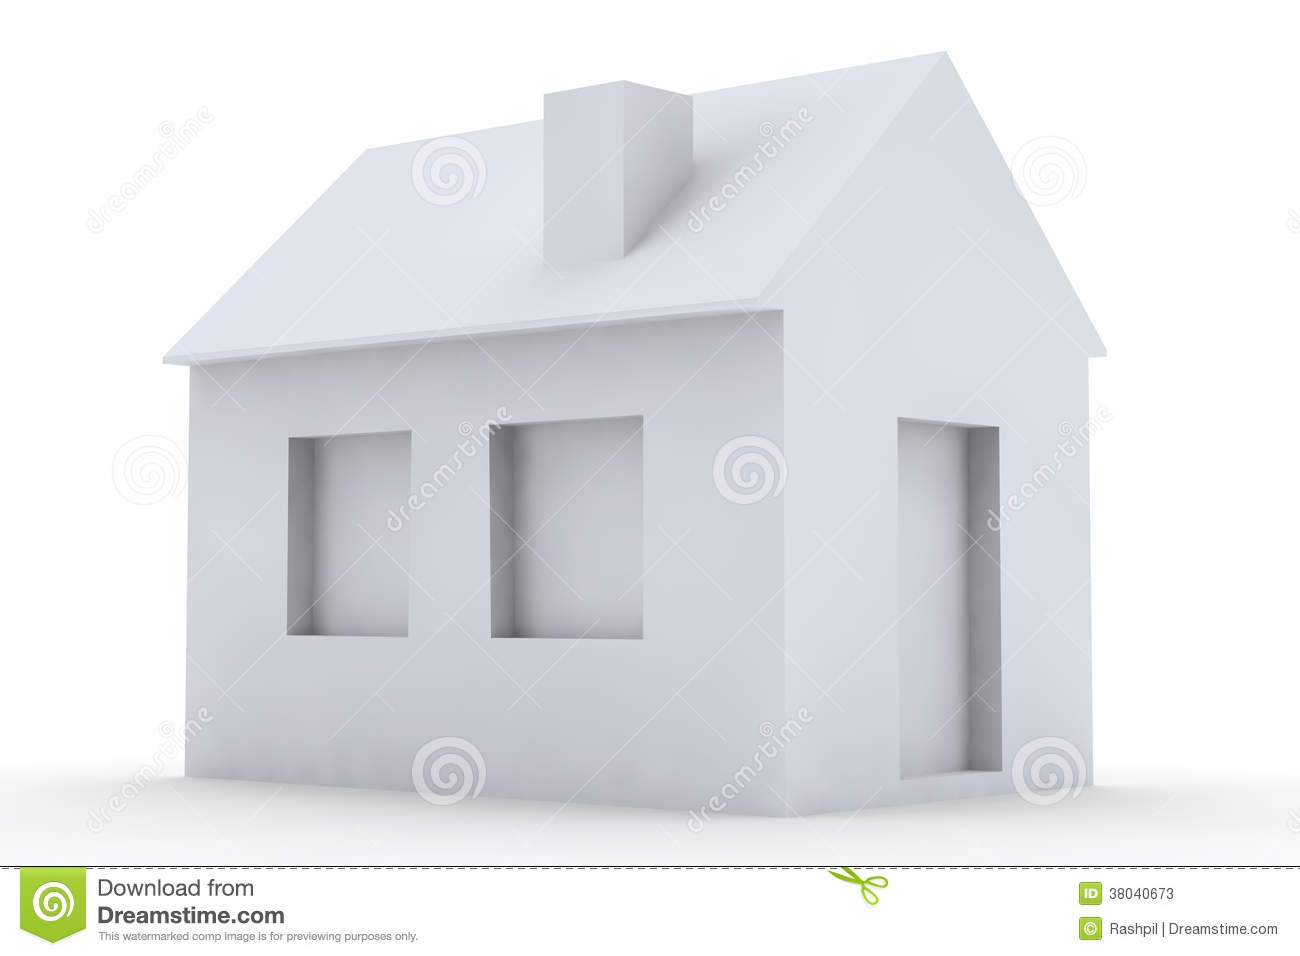 Simple 3d house stock illustration illustration of abstract 38040673 for Easy 3d home design software free